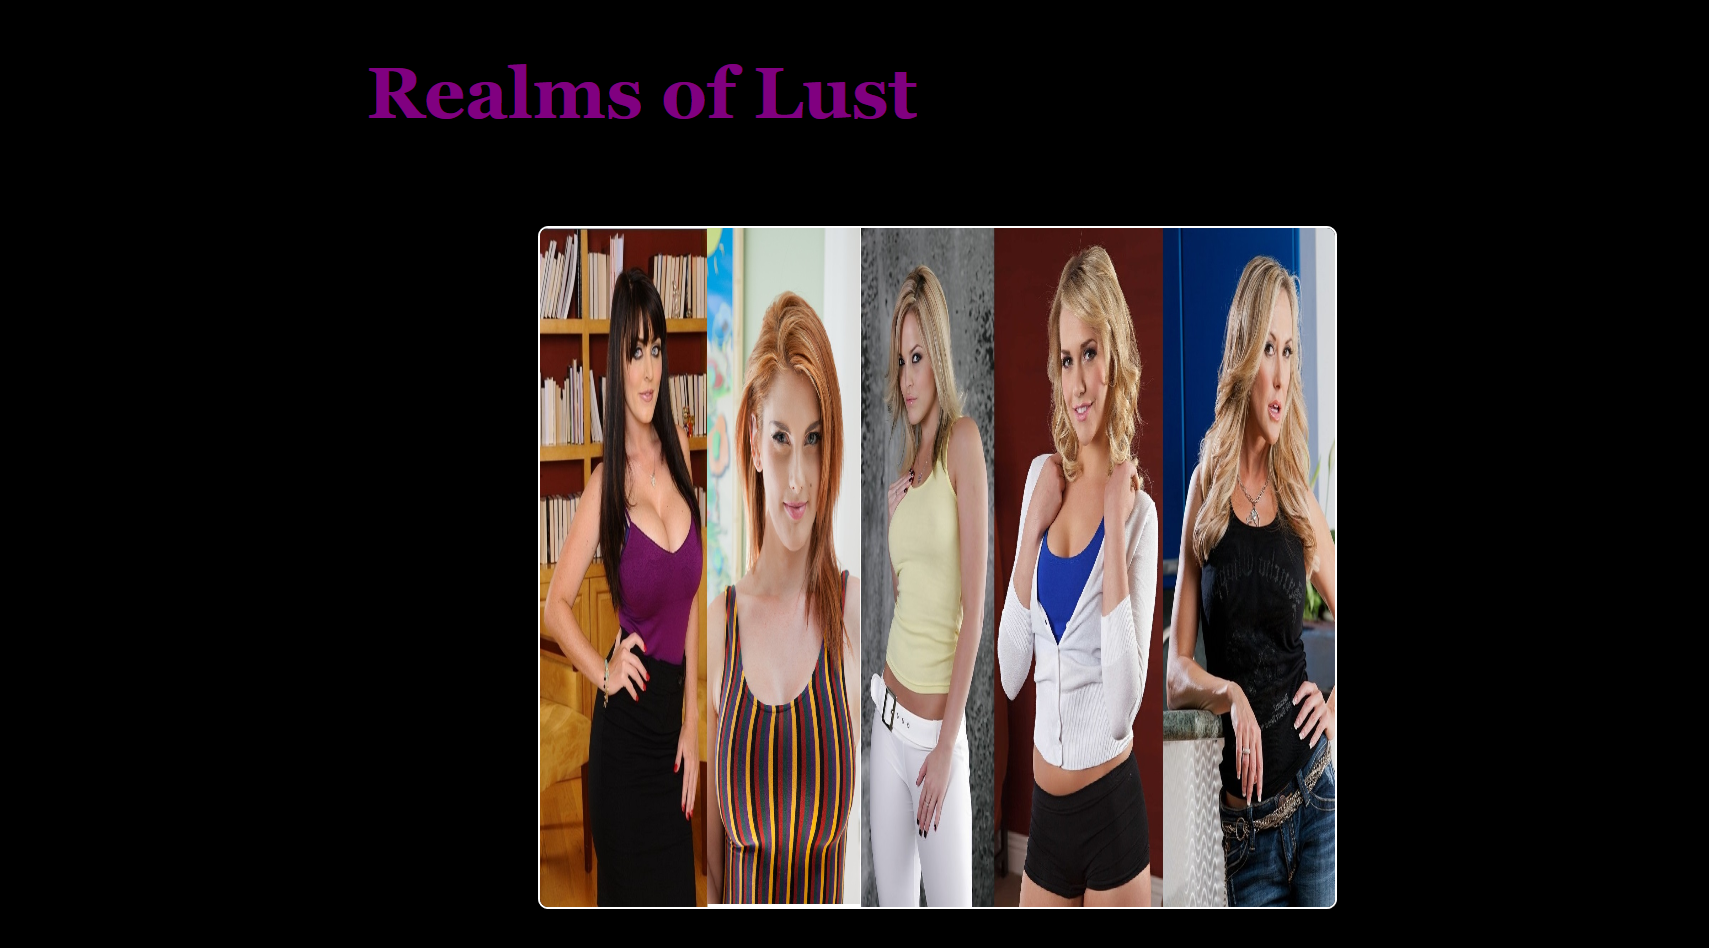 Realms of lust